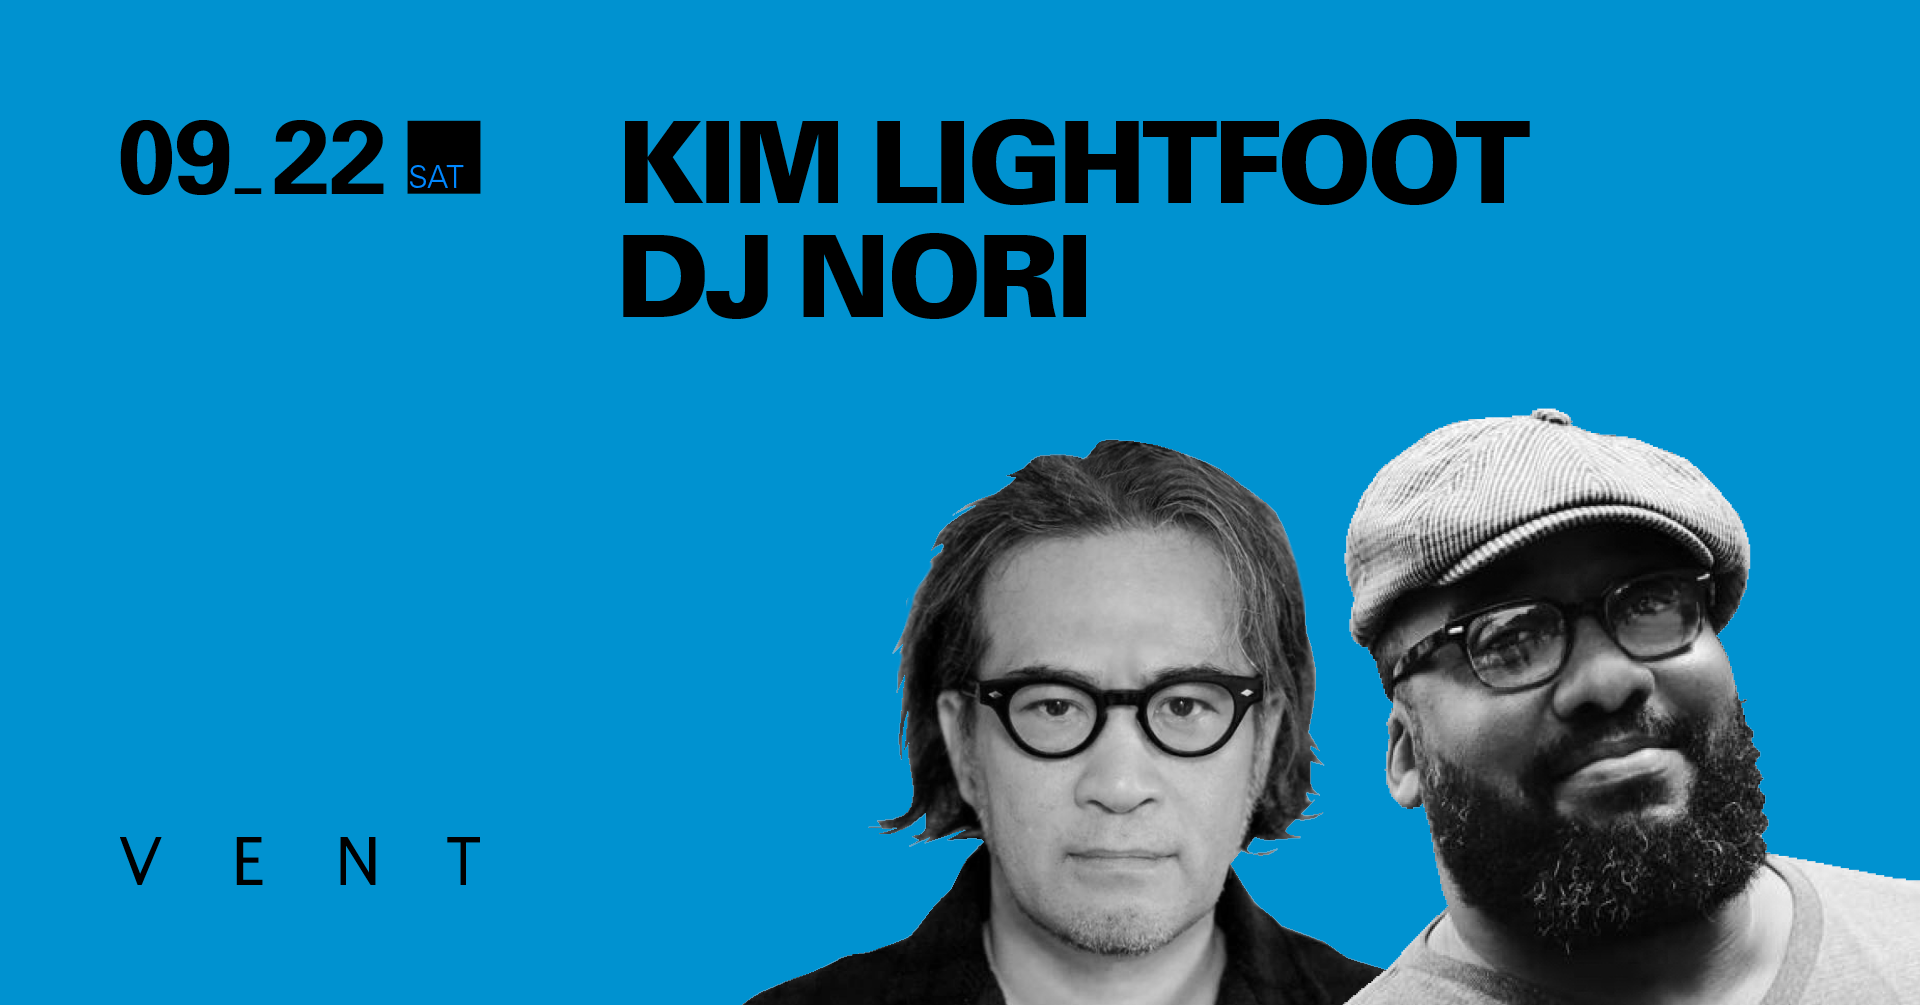 Kim Lightfoot DJ NORI